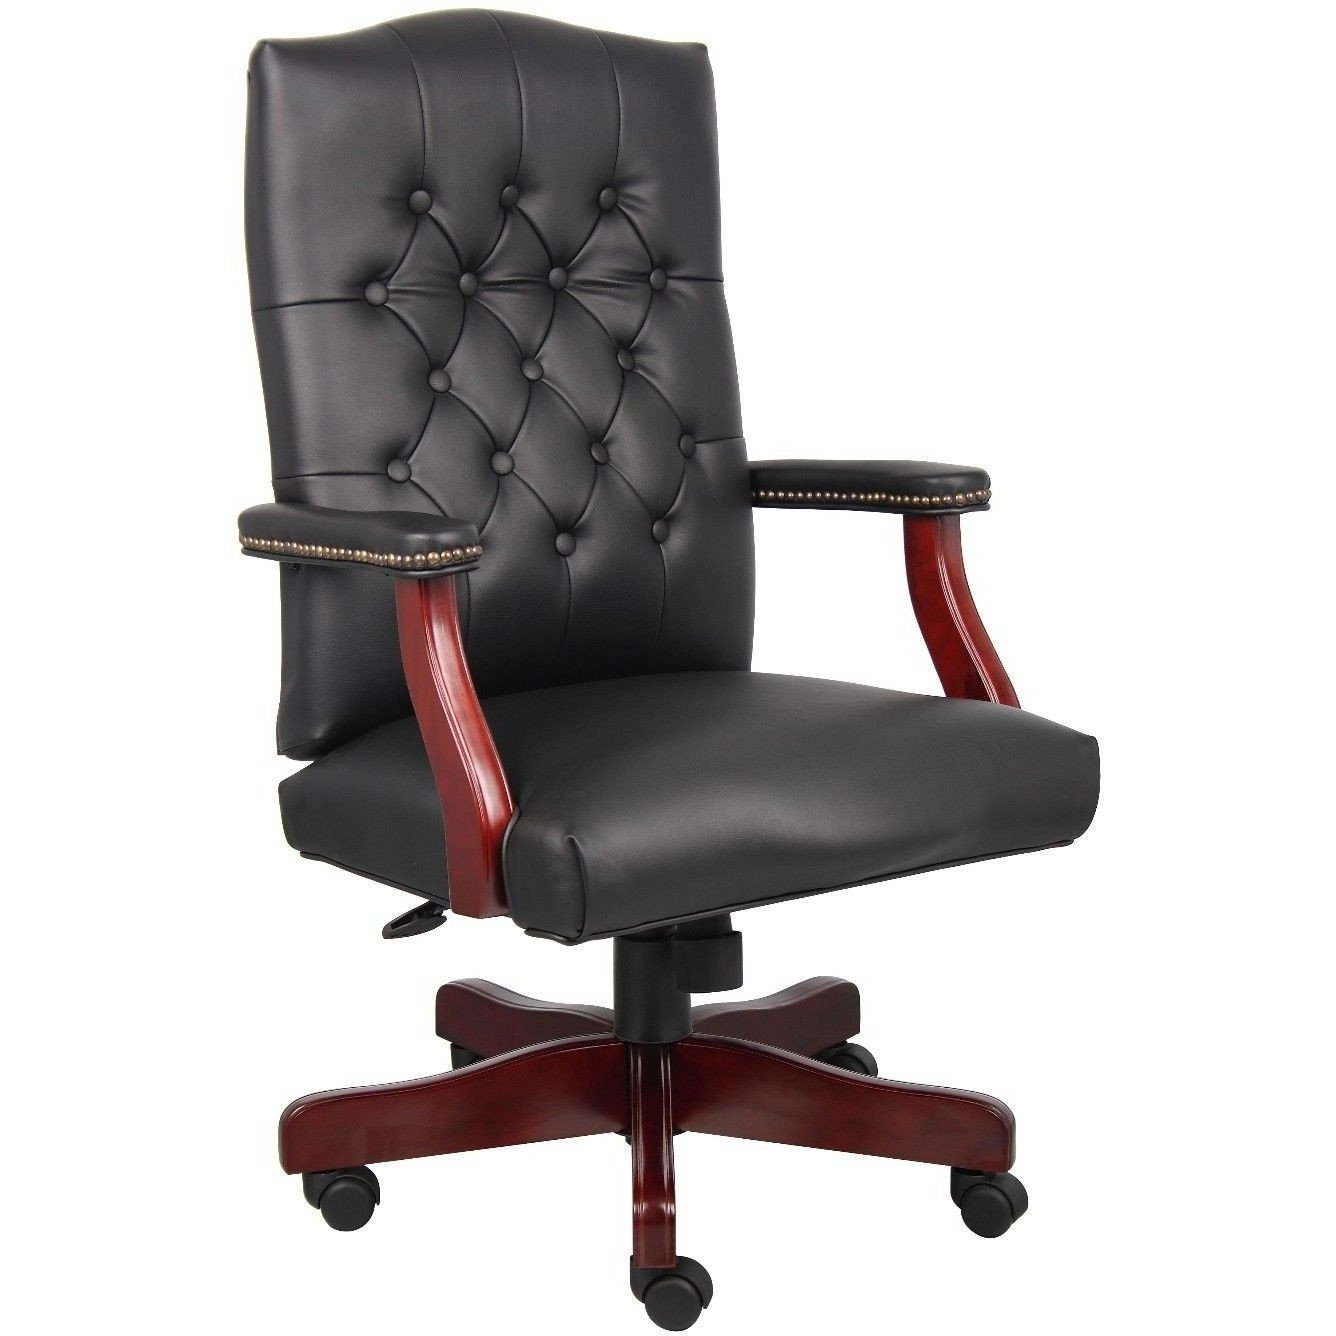 tufted leather executive office chair real leather midback traditional tufted leather executive office chairblack by timeoffice